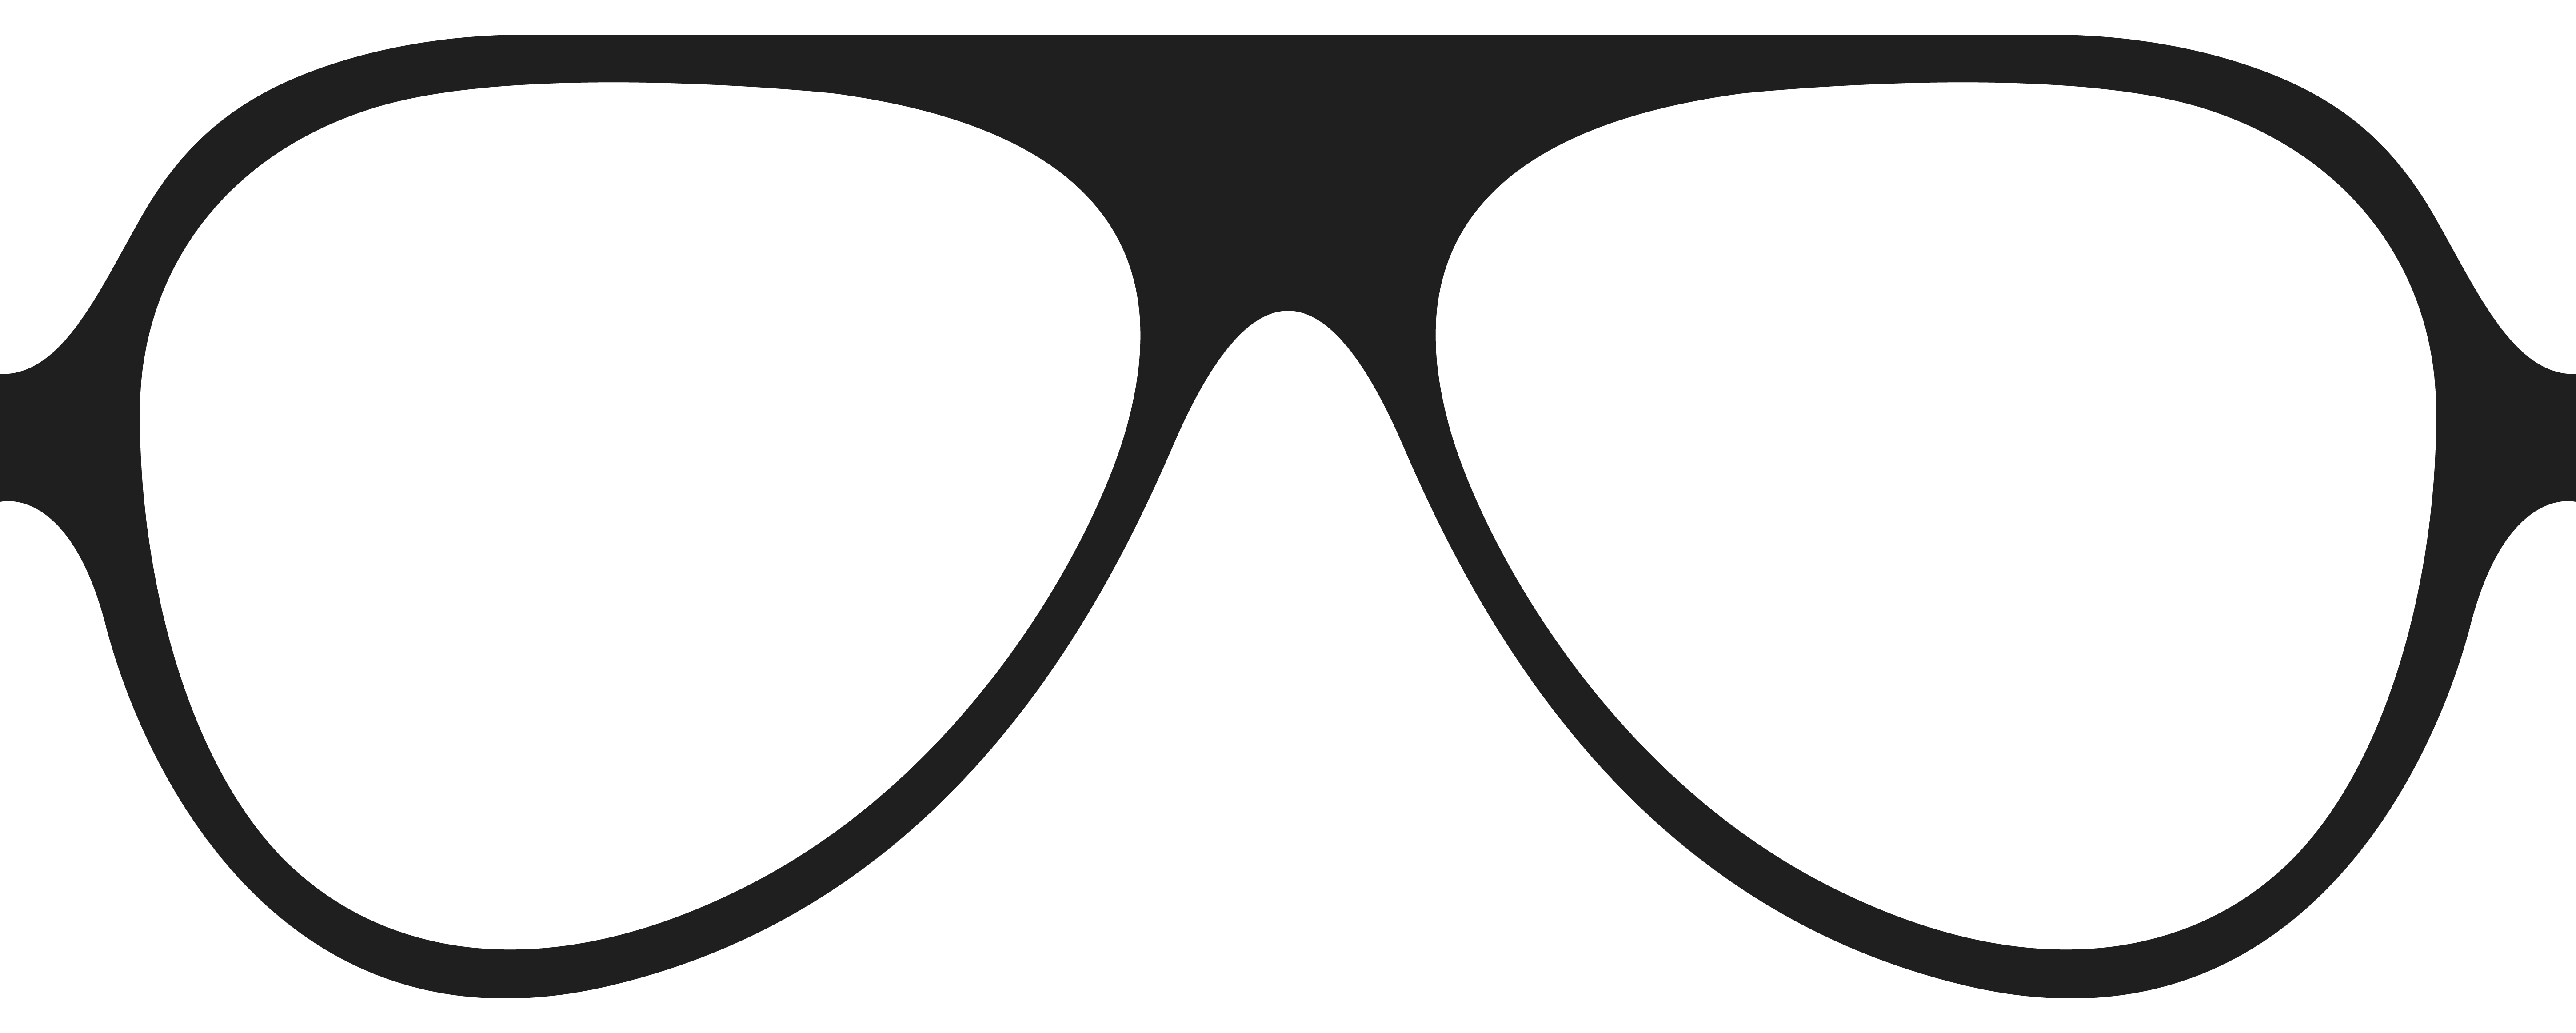 image library stock Movember Glasses PNG Clipart Picture